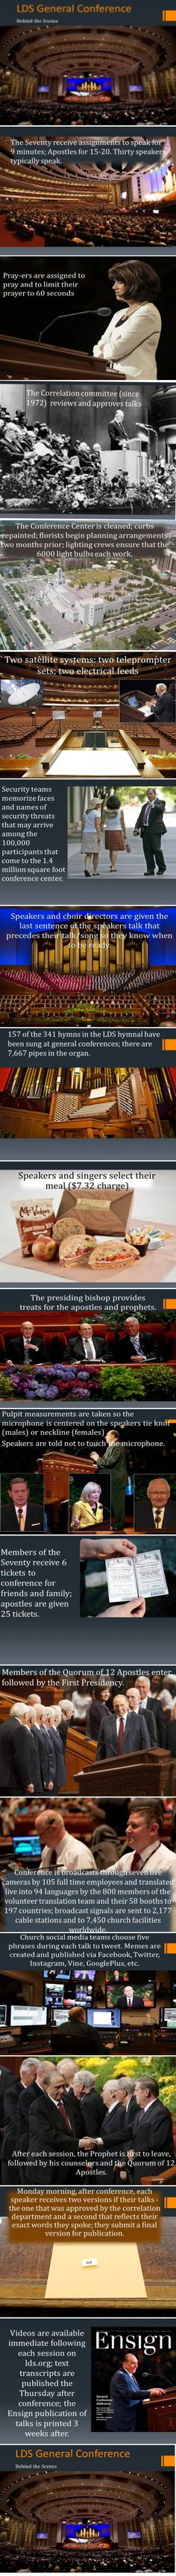 Behind the scenes of LDS General Conference - I've always wondered about the meal between sessions. :)